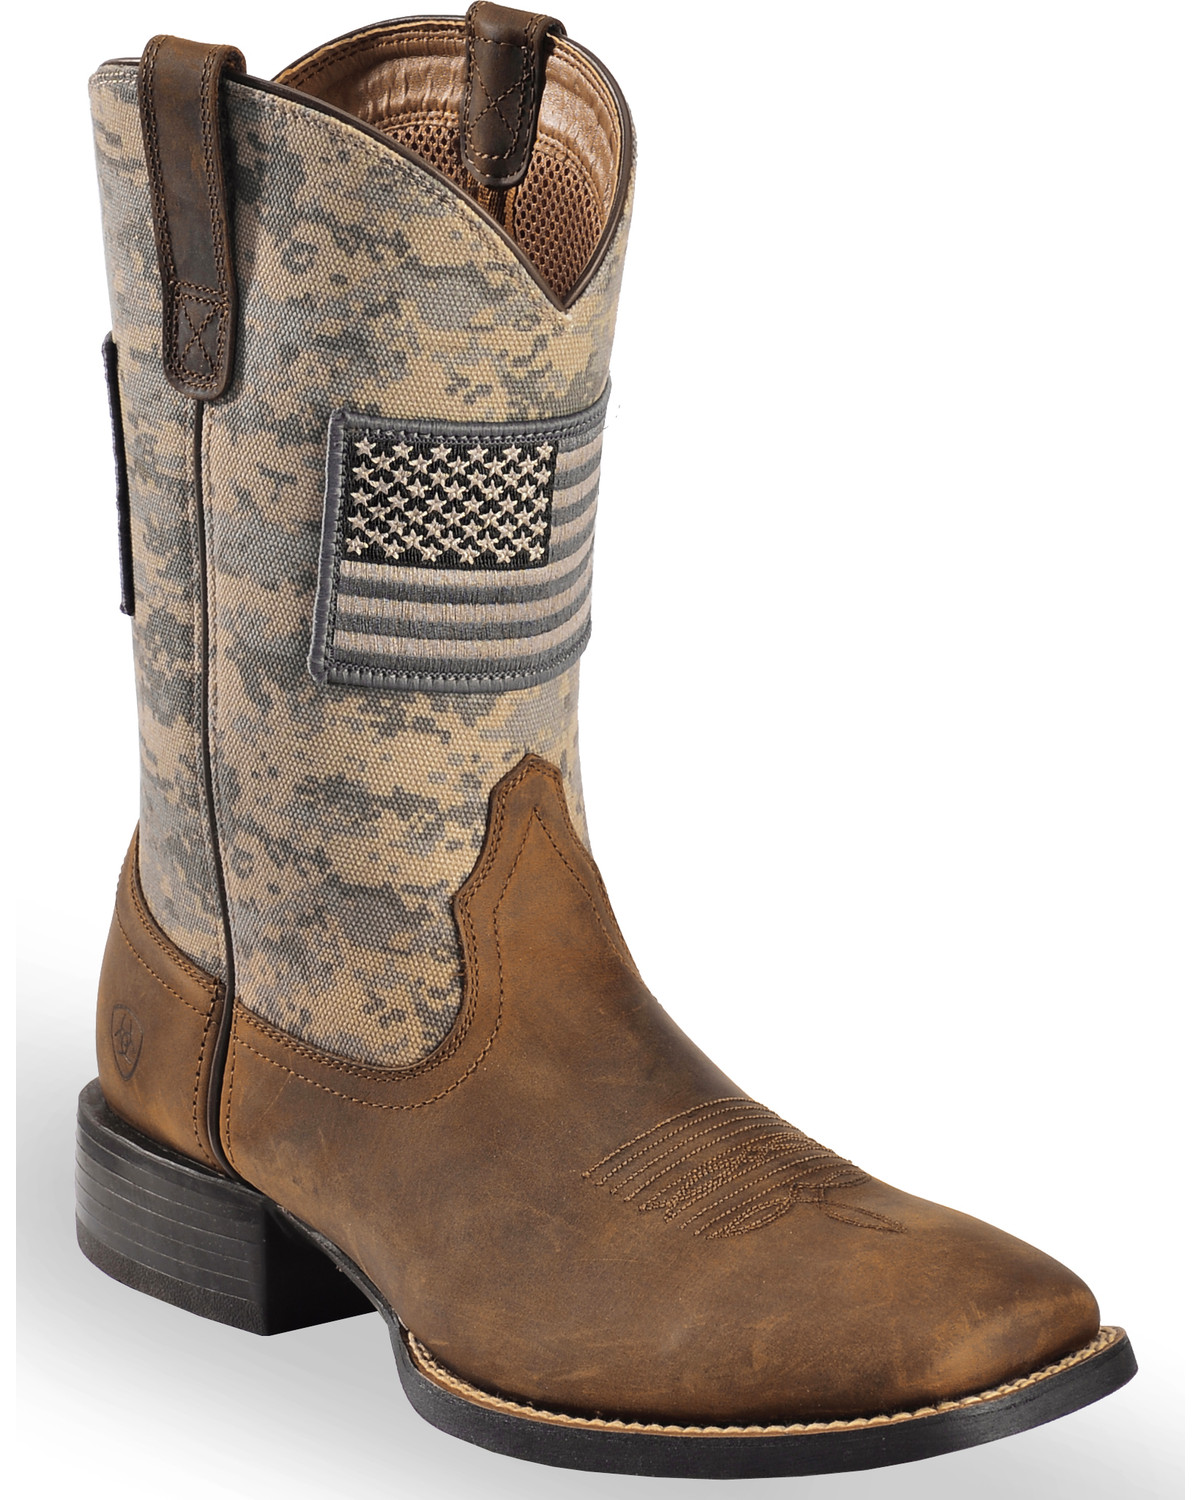 54c6a3f6 Zoomed Image Ariat Men's Distressed Brown Sage Camo Sport Patriot Western  ...